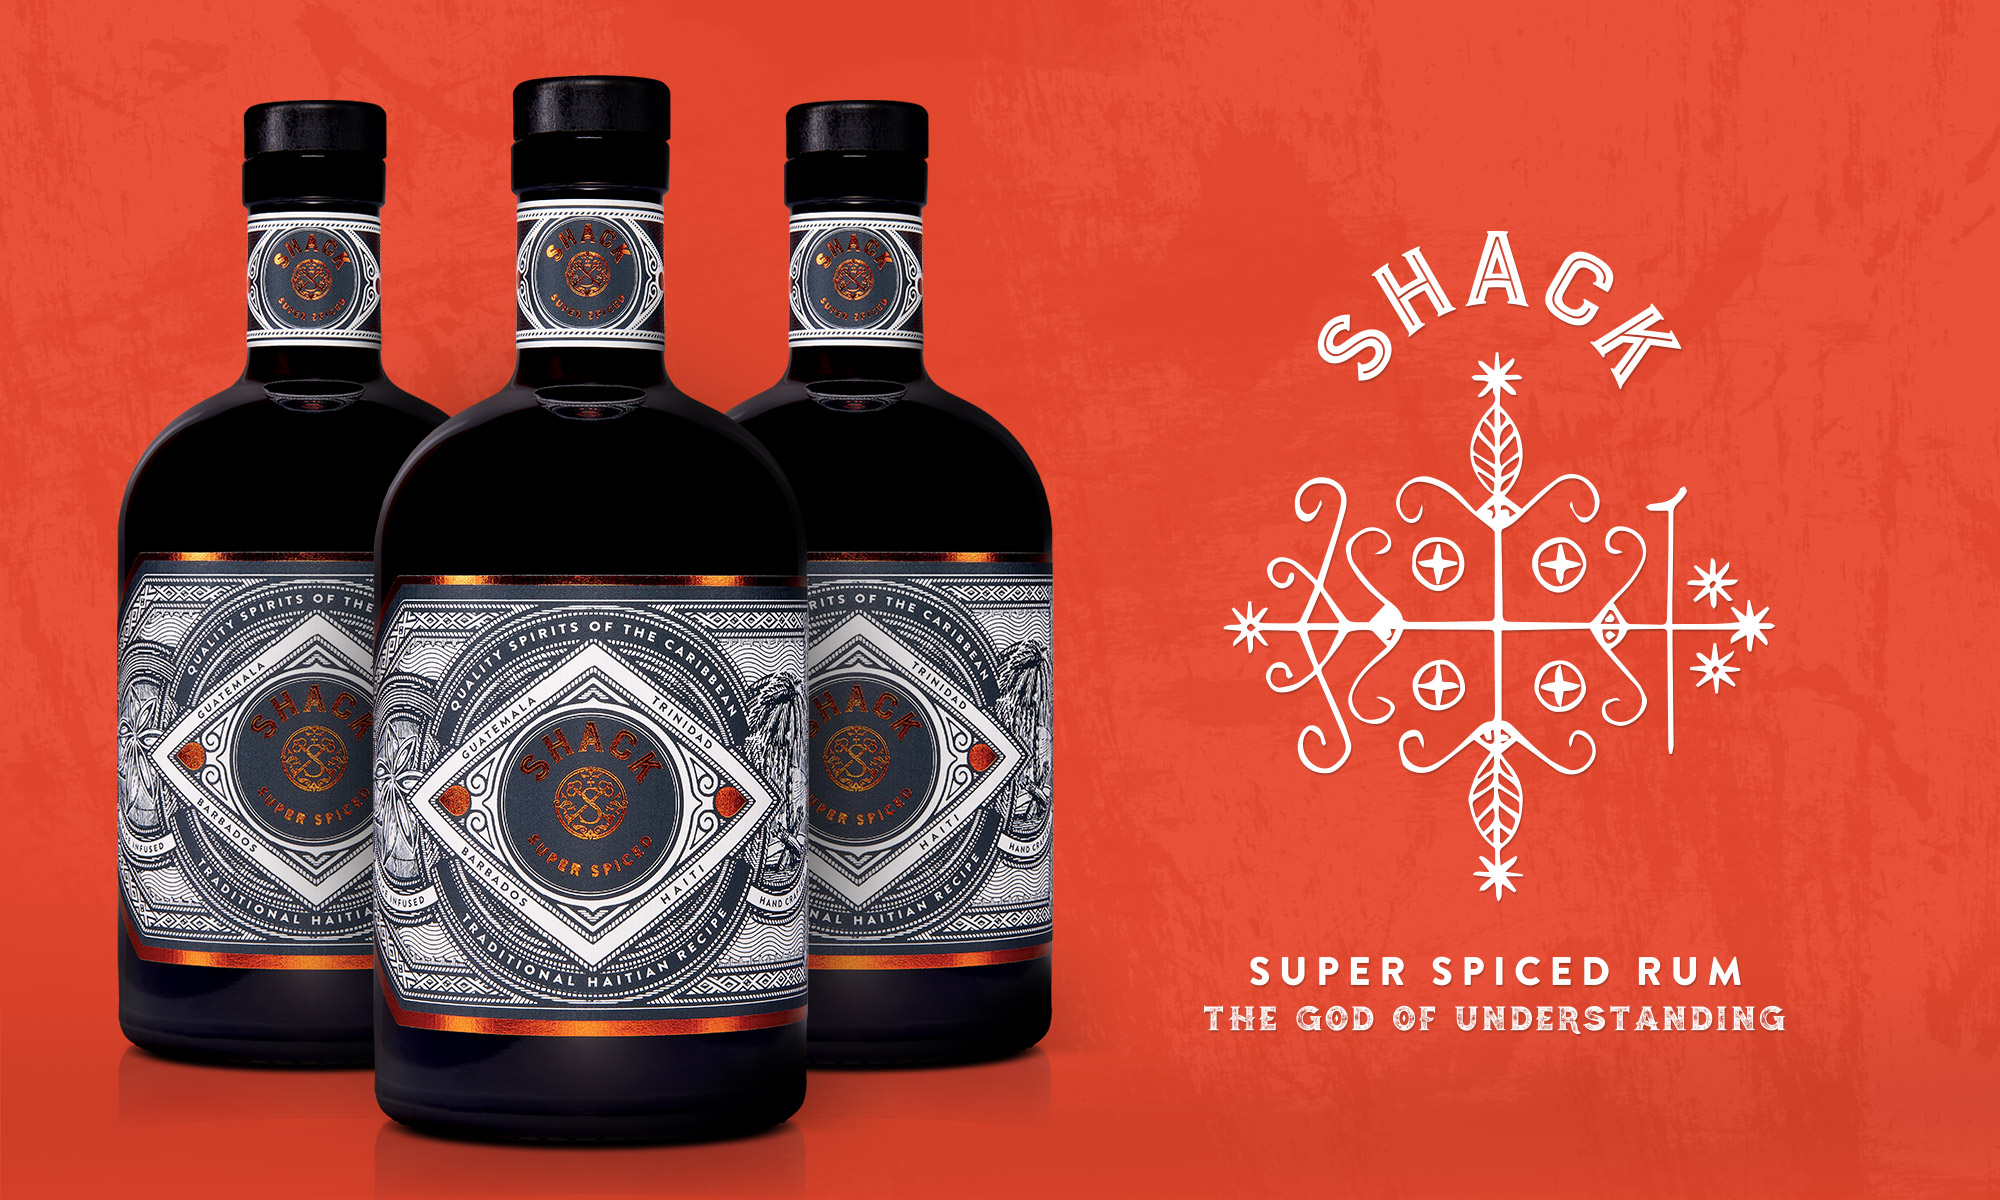 Shack rum Super Spiced